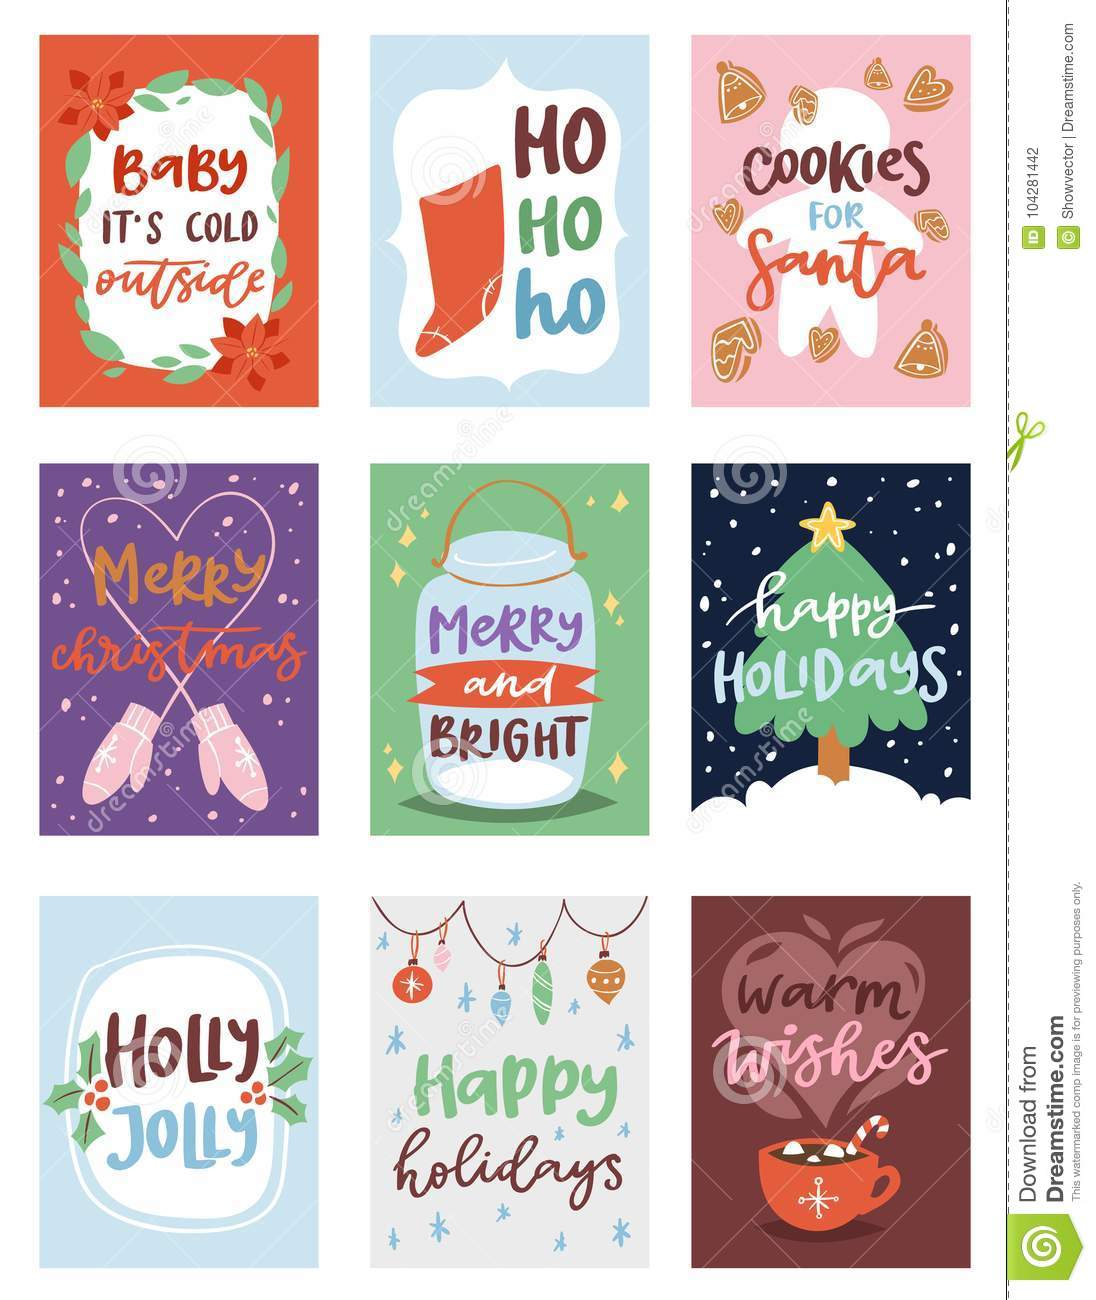 Christmas Party Images Clip Art.Christmas Party Invintation Vector Card Design Template For